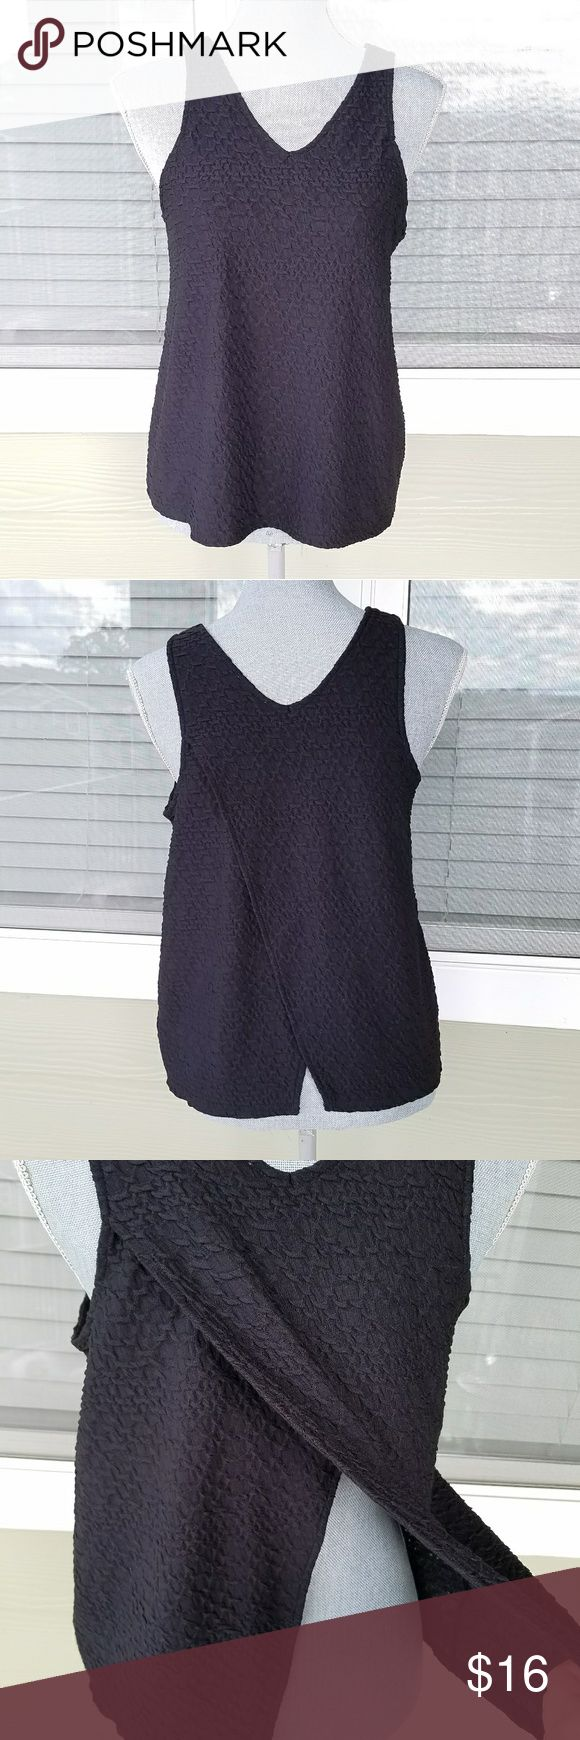 Anthropologie Deletta Tank Black textured tank top with open back. Flaps on the back stay closed while wearing (unless you bend over, etc.) In great condition! Size medium. Anthropologie Tops Tank Tops